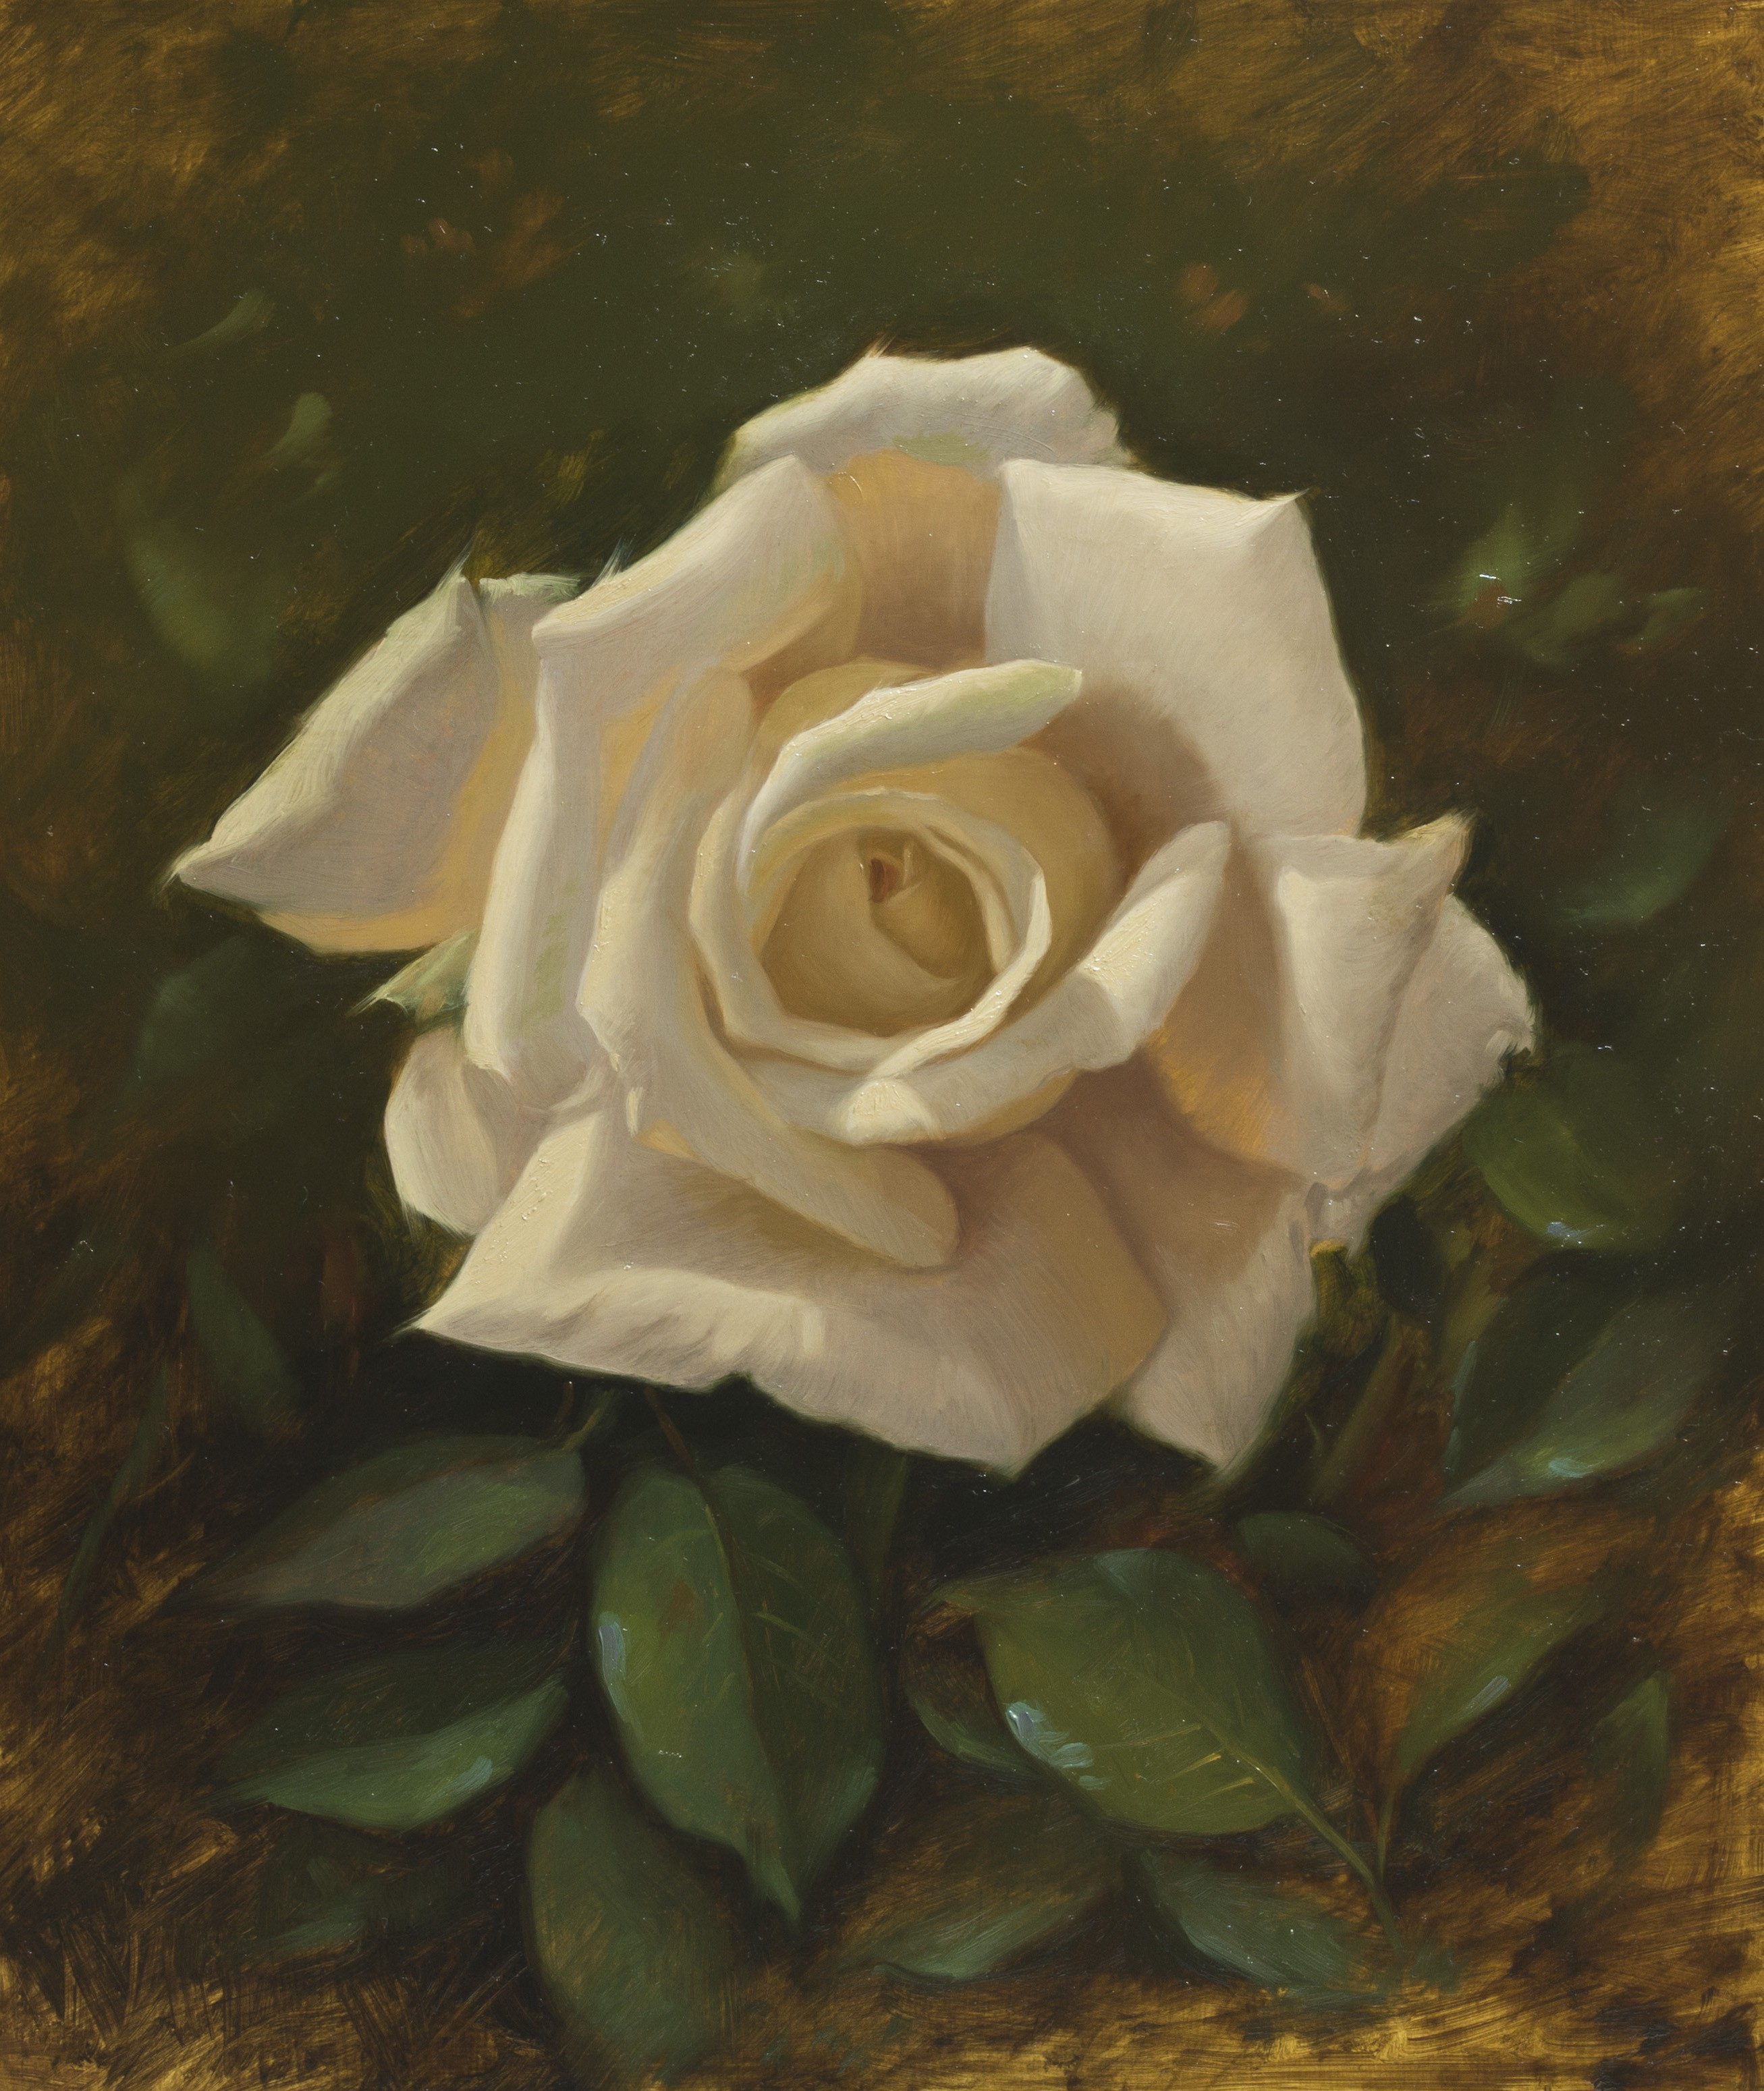 white-rose---oil-on-acm-30-x-35-cm.jpg